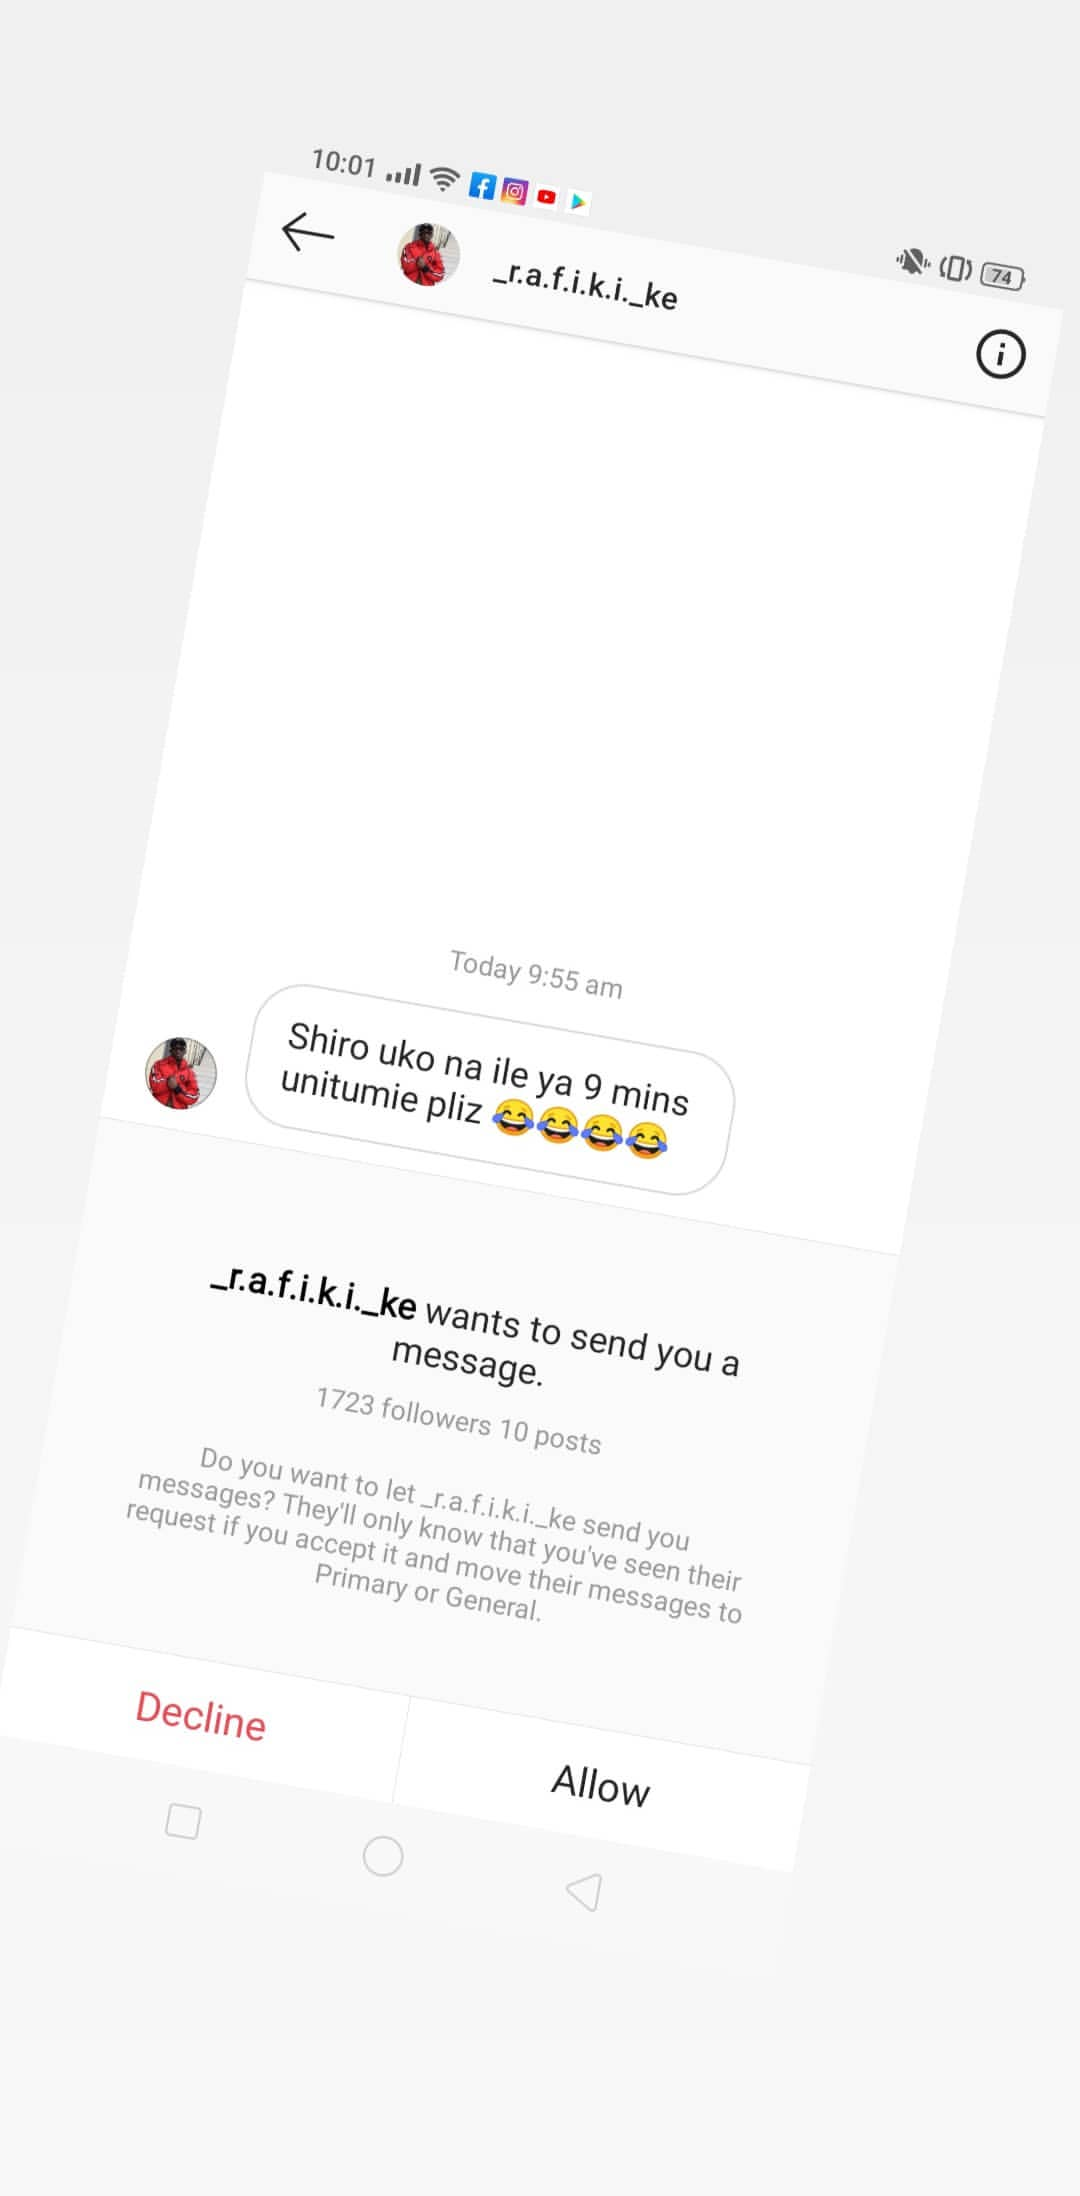 Nyce leaked12 - Nyce Wanjeri breaks her silence exposes blackmailers in her DM